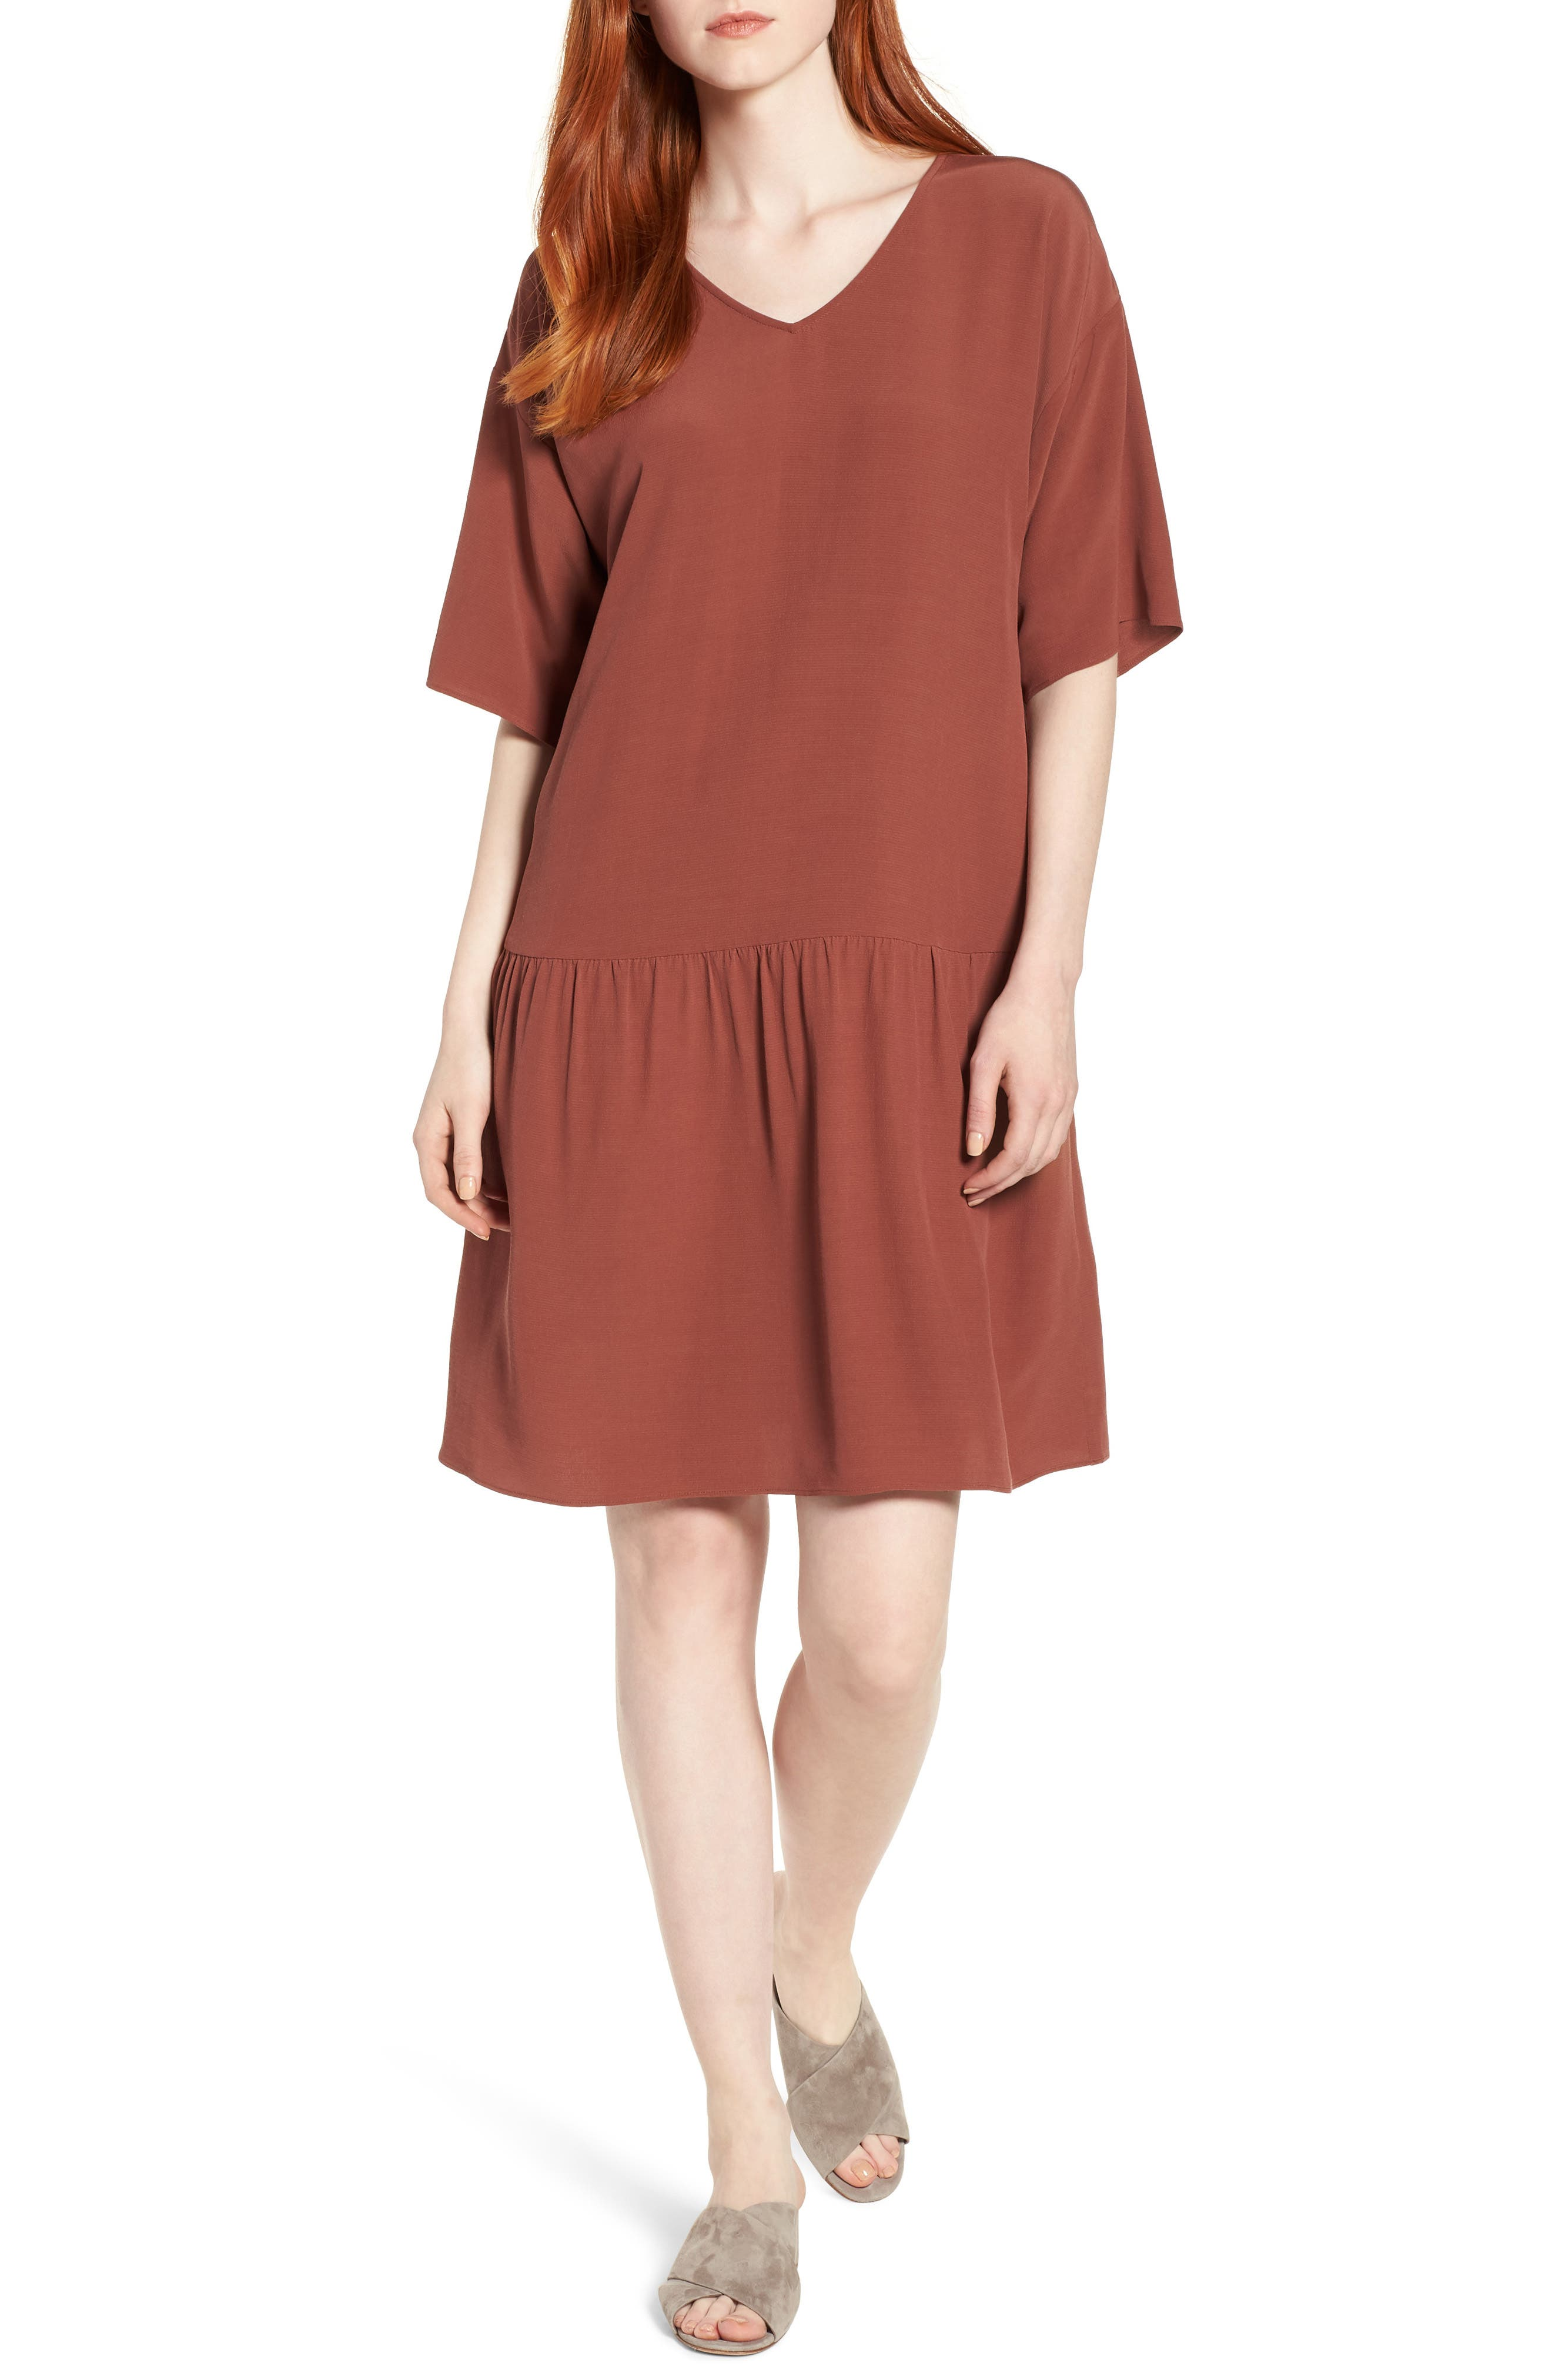 Drop Waist Tencel<sup>®</sup> Lyocell Blend Dress,                             Main thumbnail 1, color,                             Russet